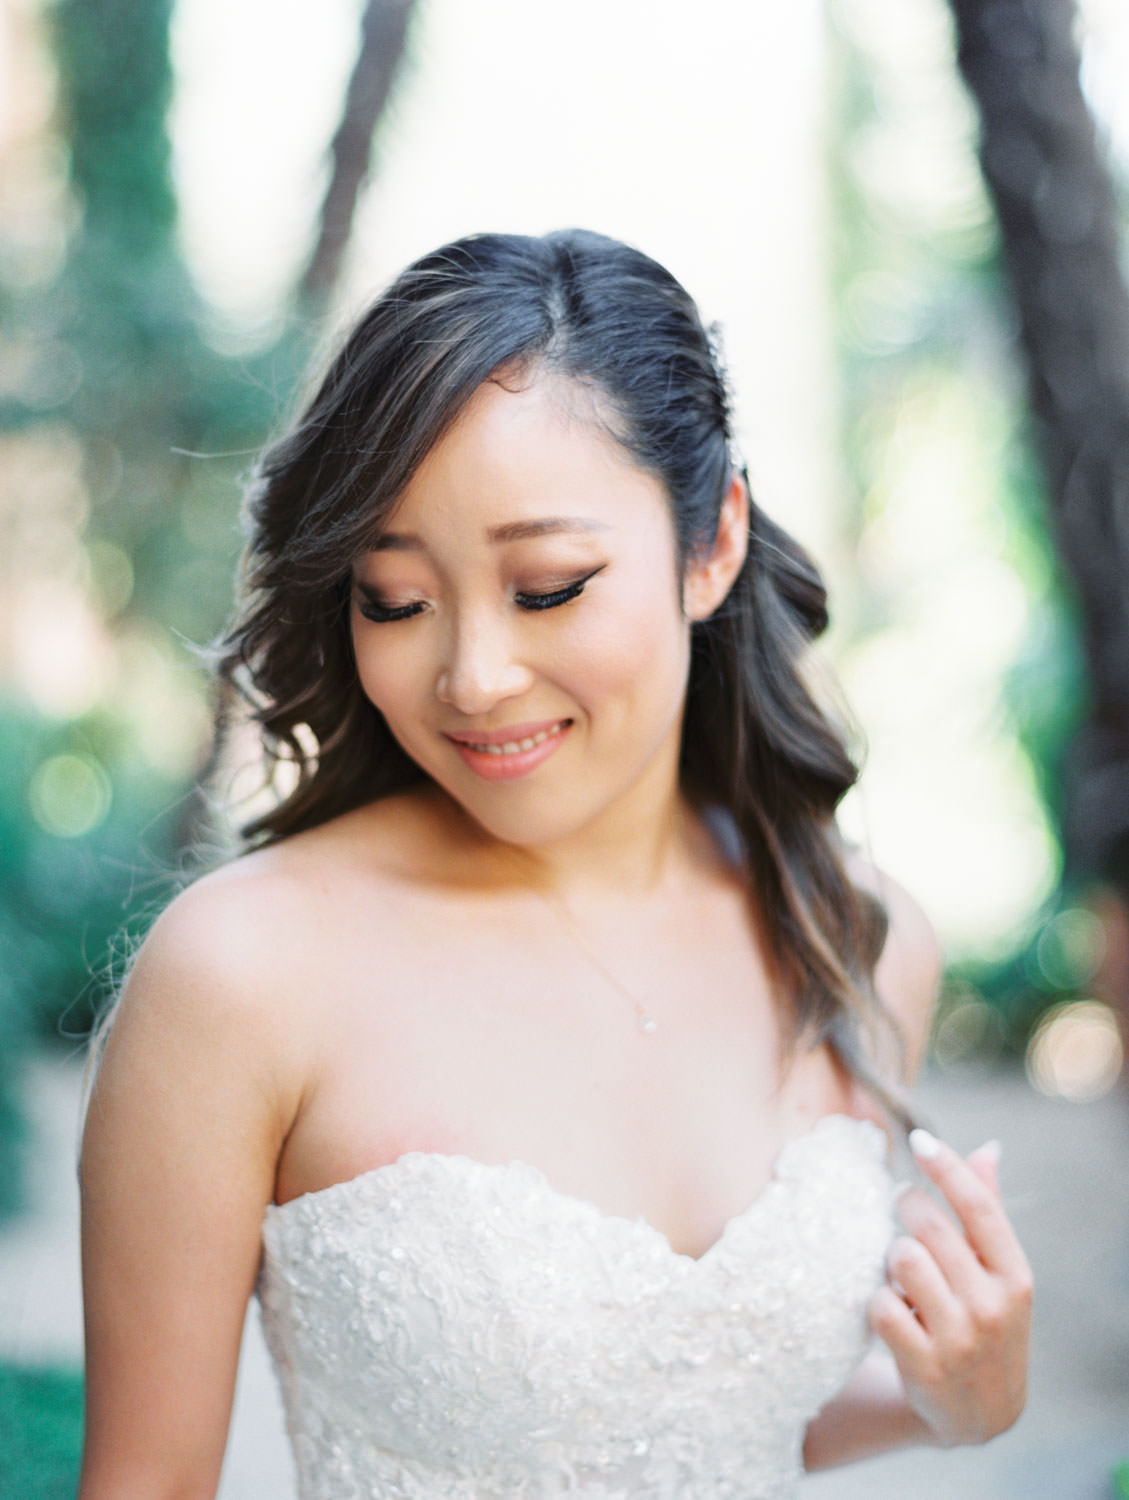 Bride in a Martina Liana gown from the White Flower Bridal Boutique. Hair down and curled. Rancho Bernardo Inn wedding. Film photo by Cavin Elizabeth Photography